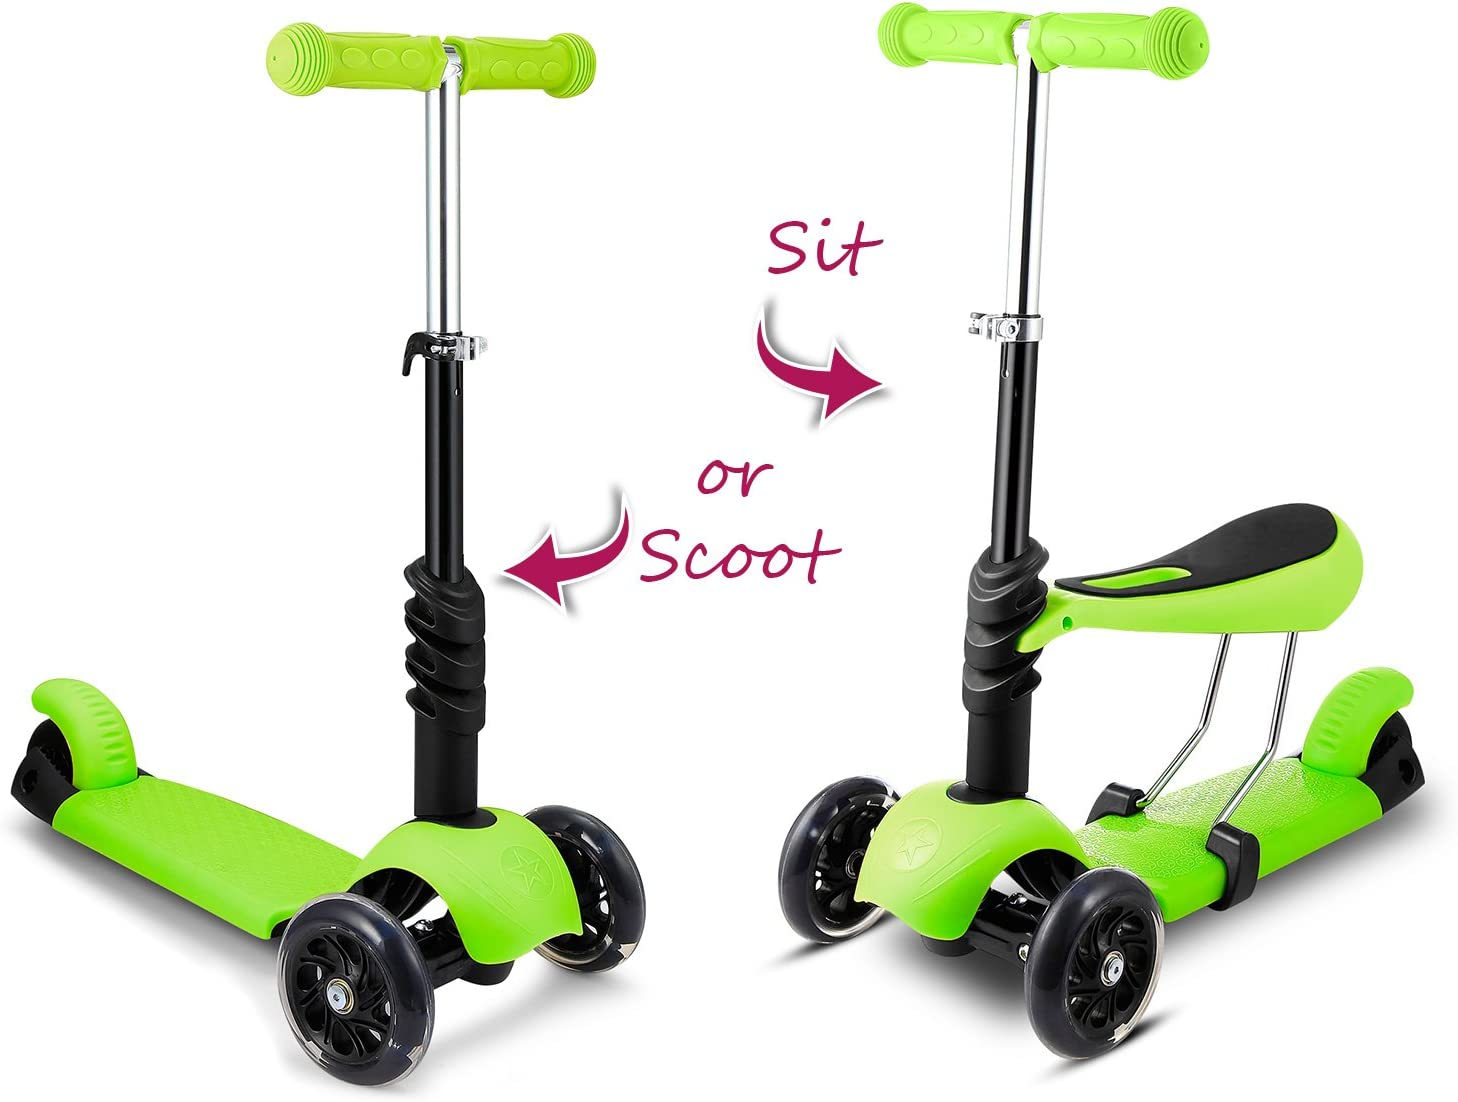 Hikole Scooter for Kids, Kick Scooters with Folding Removable Seat, Scooter for Toddlers Girls Boys, 3 Levels Height and 3 PU Flashing Wheels, Design for Children 2-8 Years Old